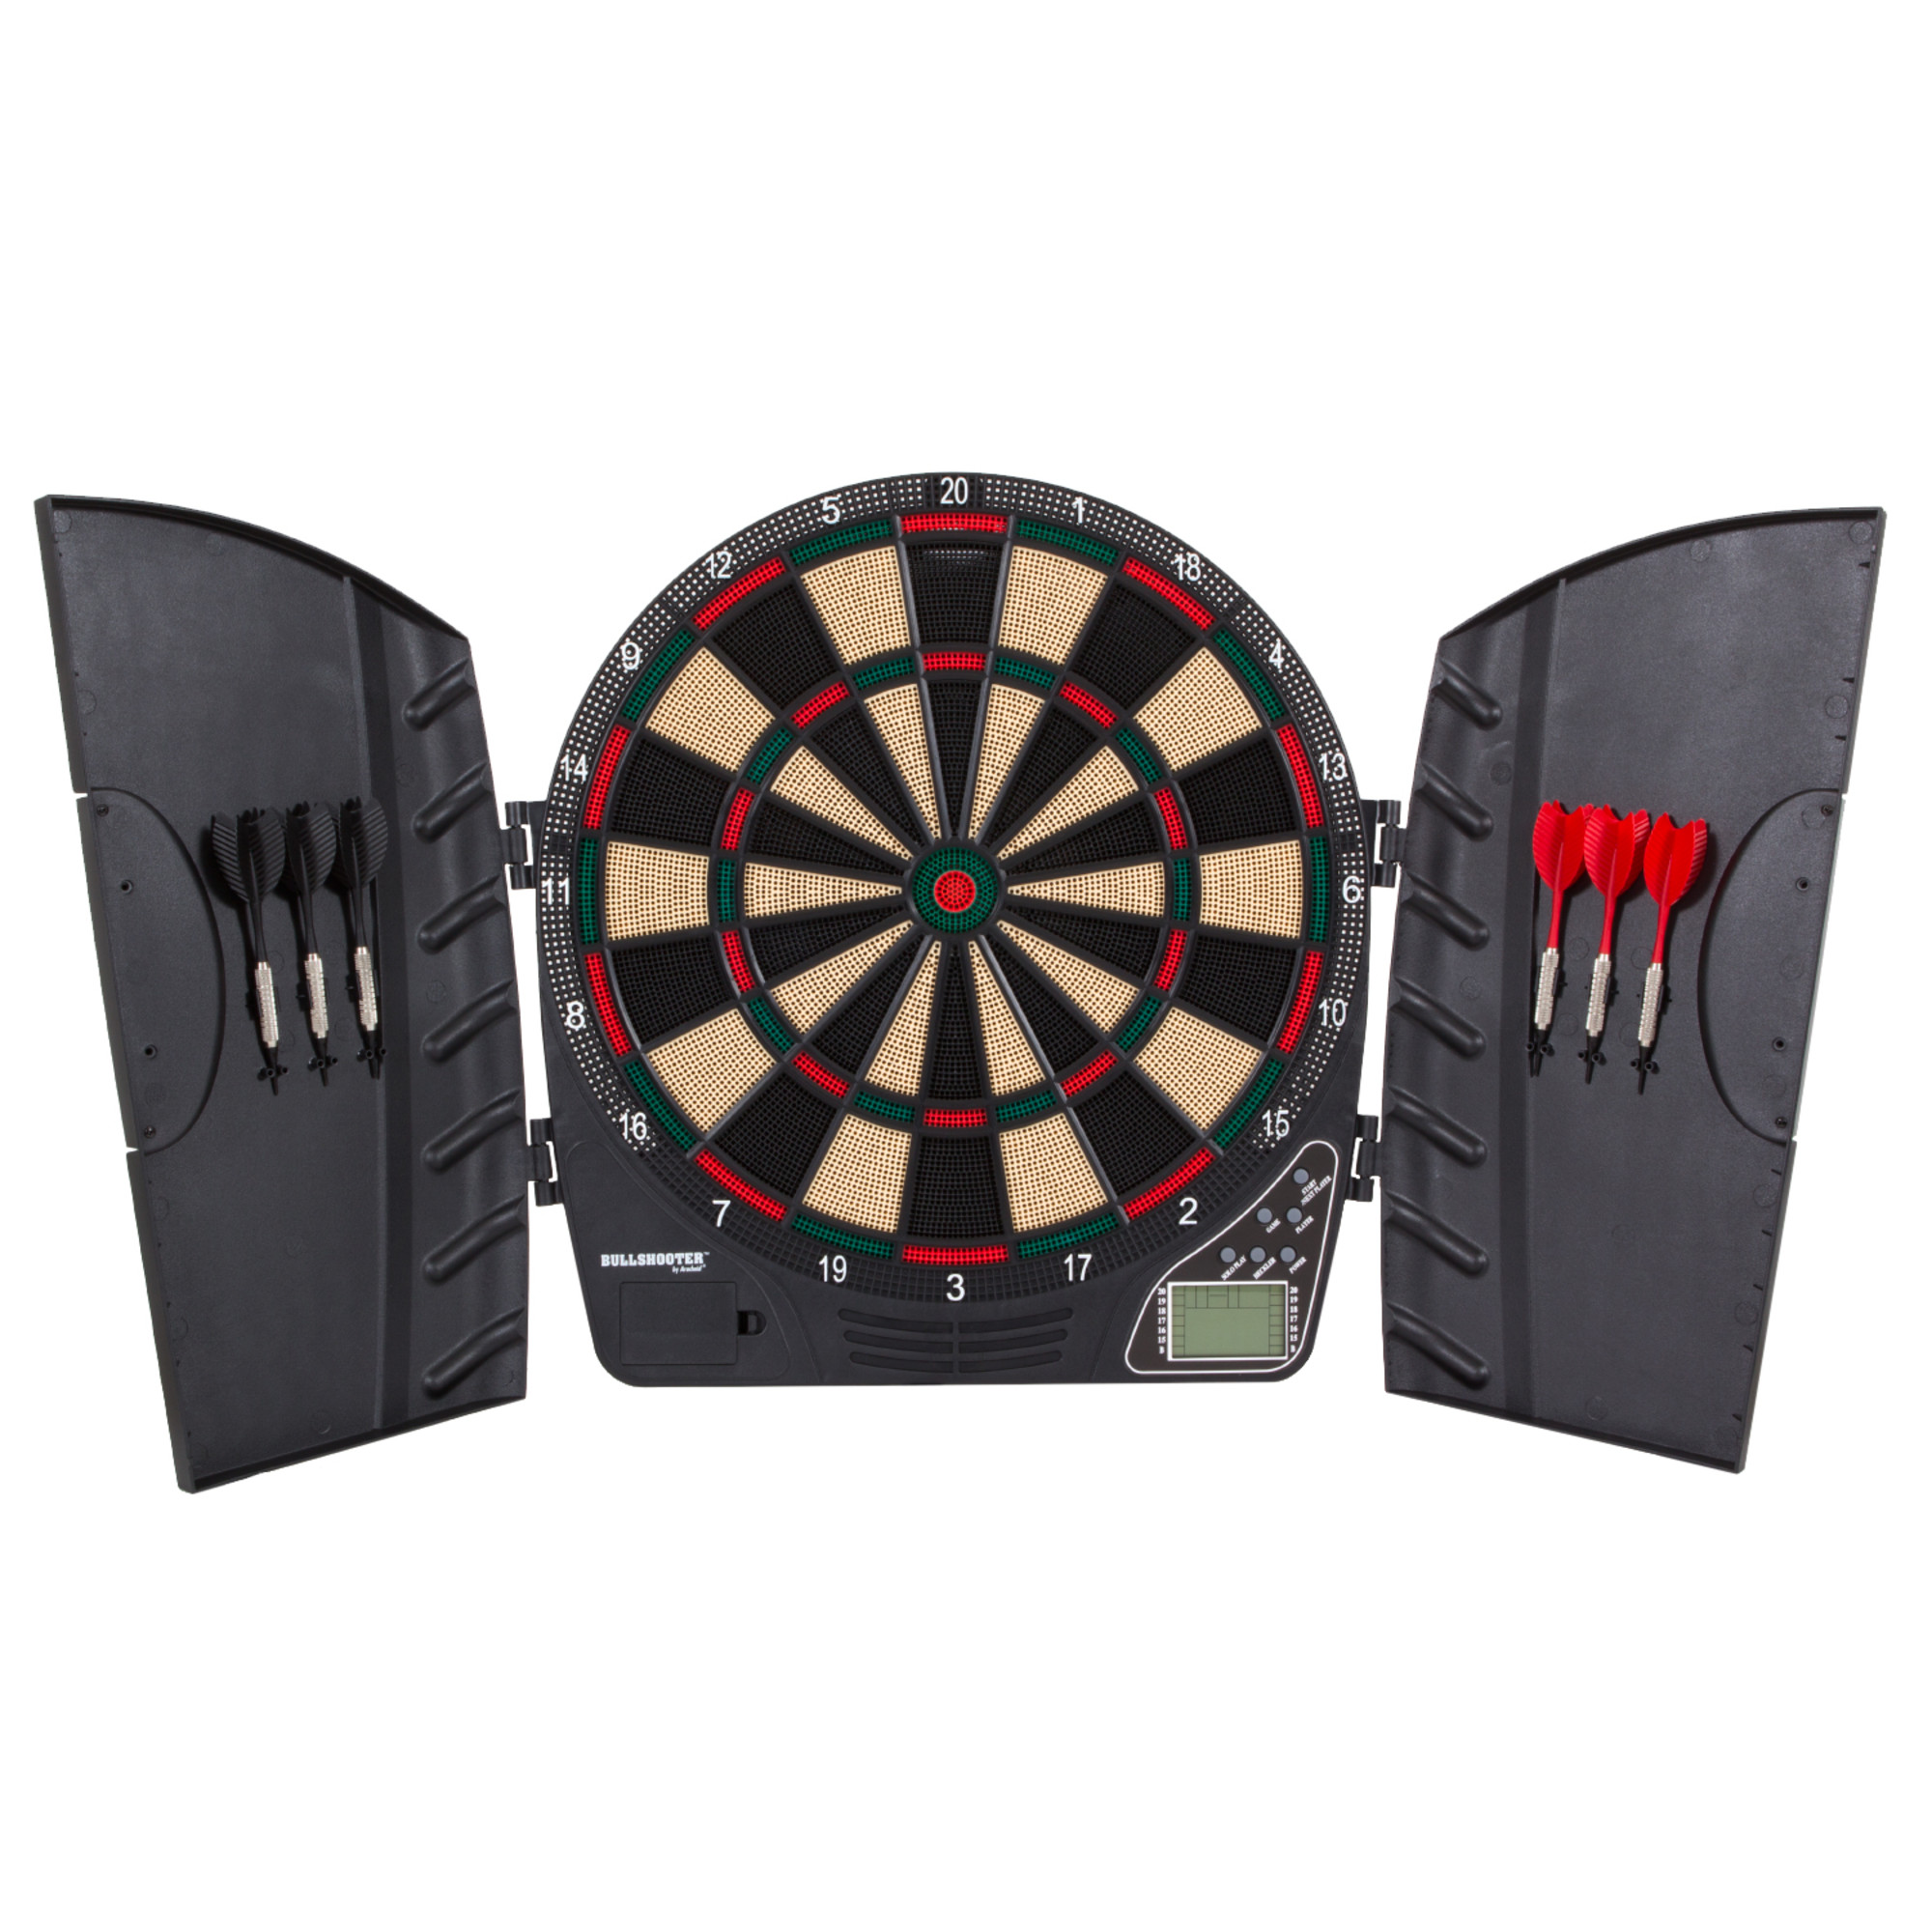 Bullshooter Reactor Electronic Dartboard and Cabinet